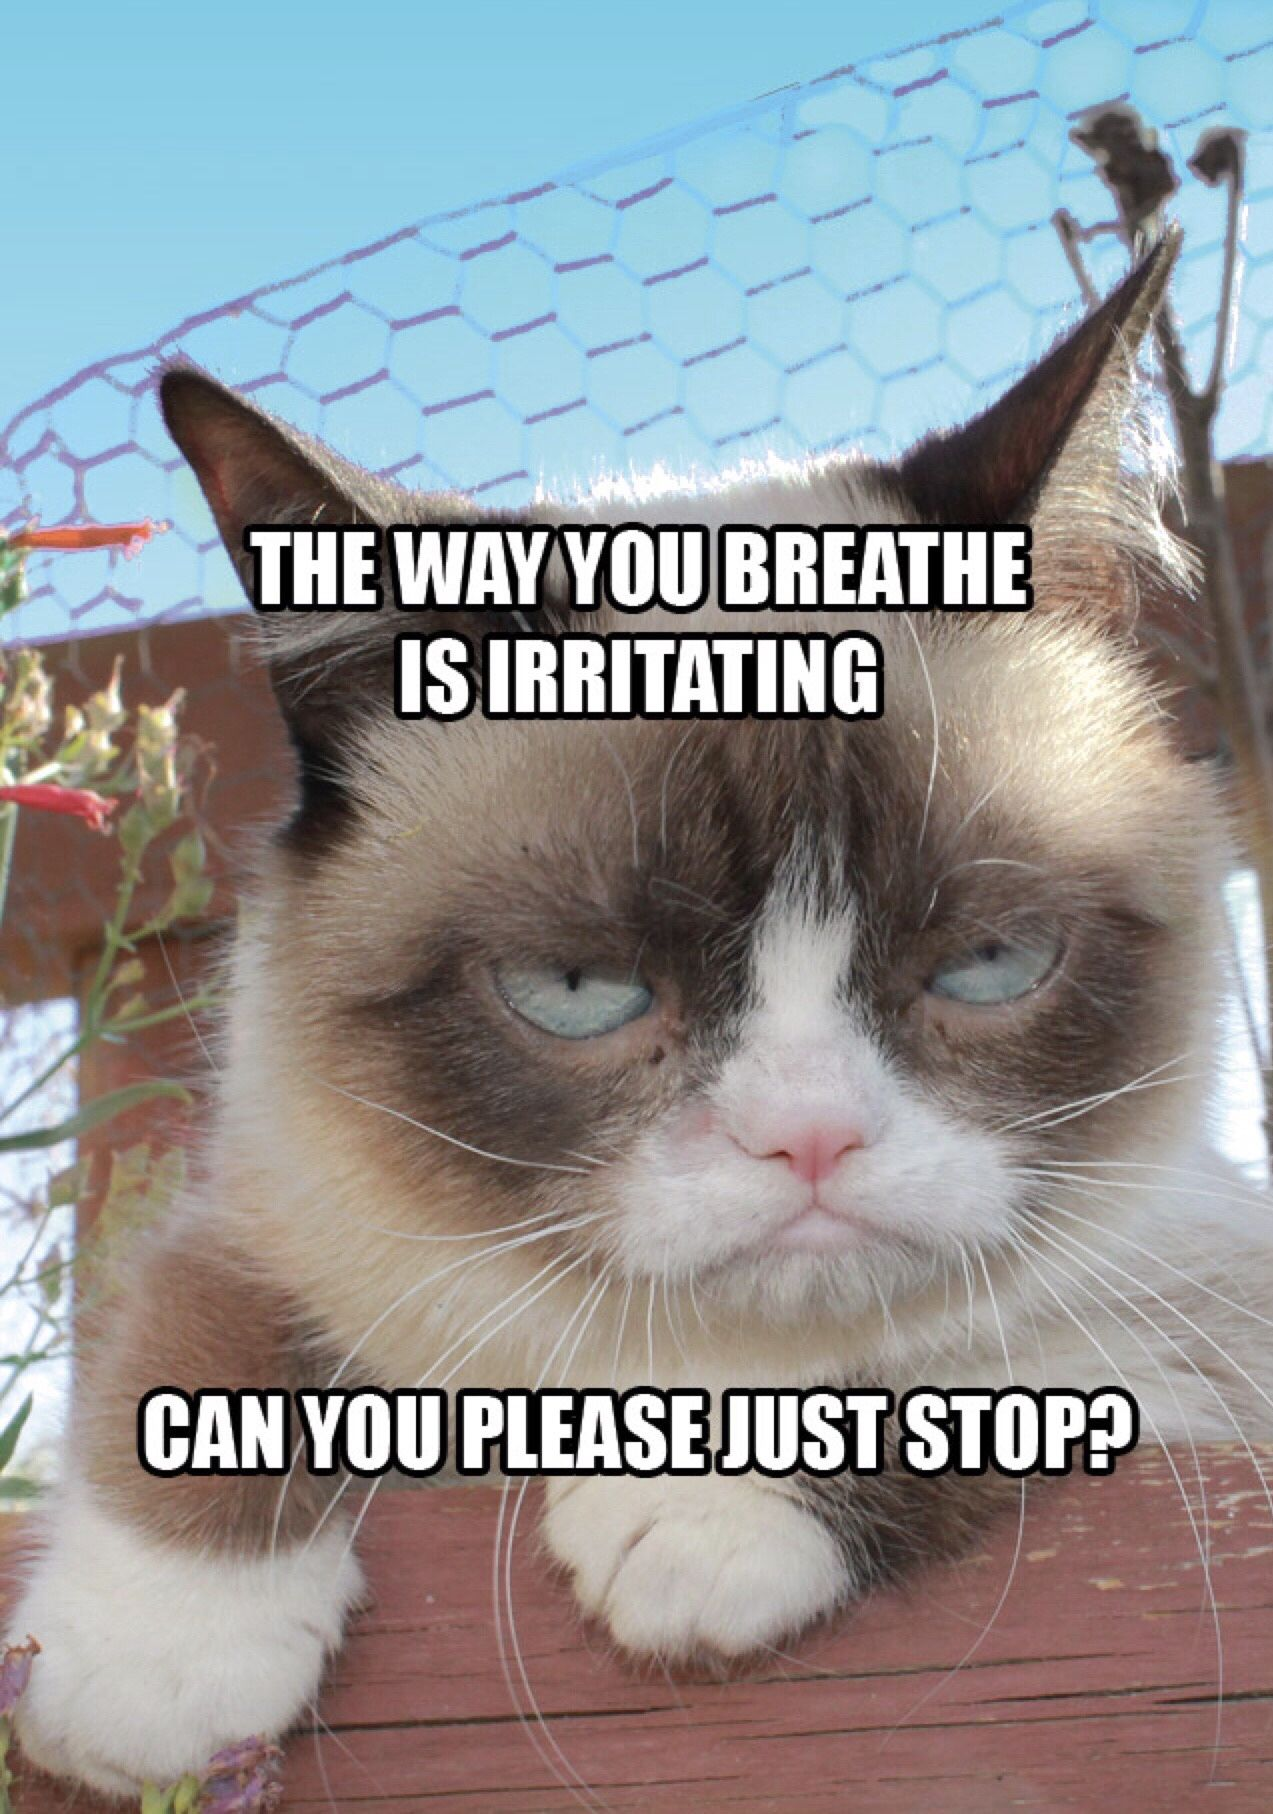 The way you breathe is irritating can you please just stop